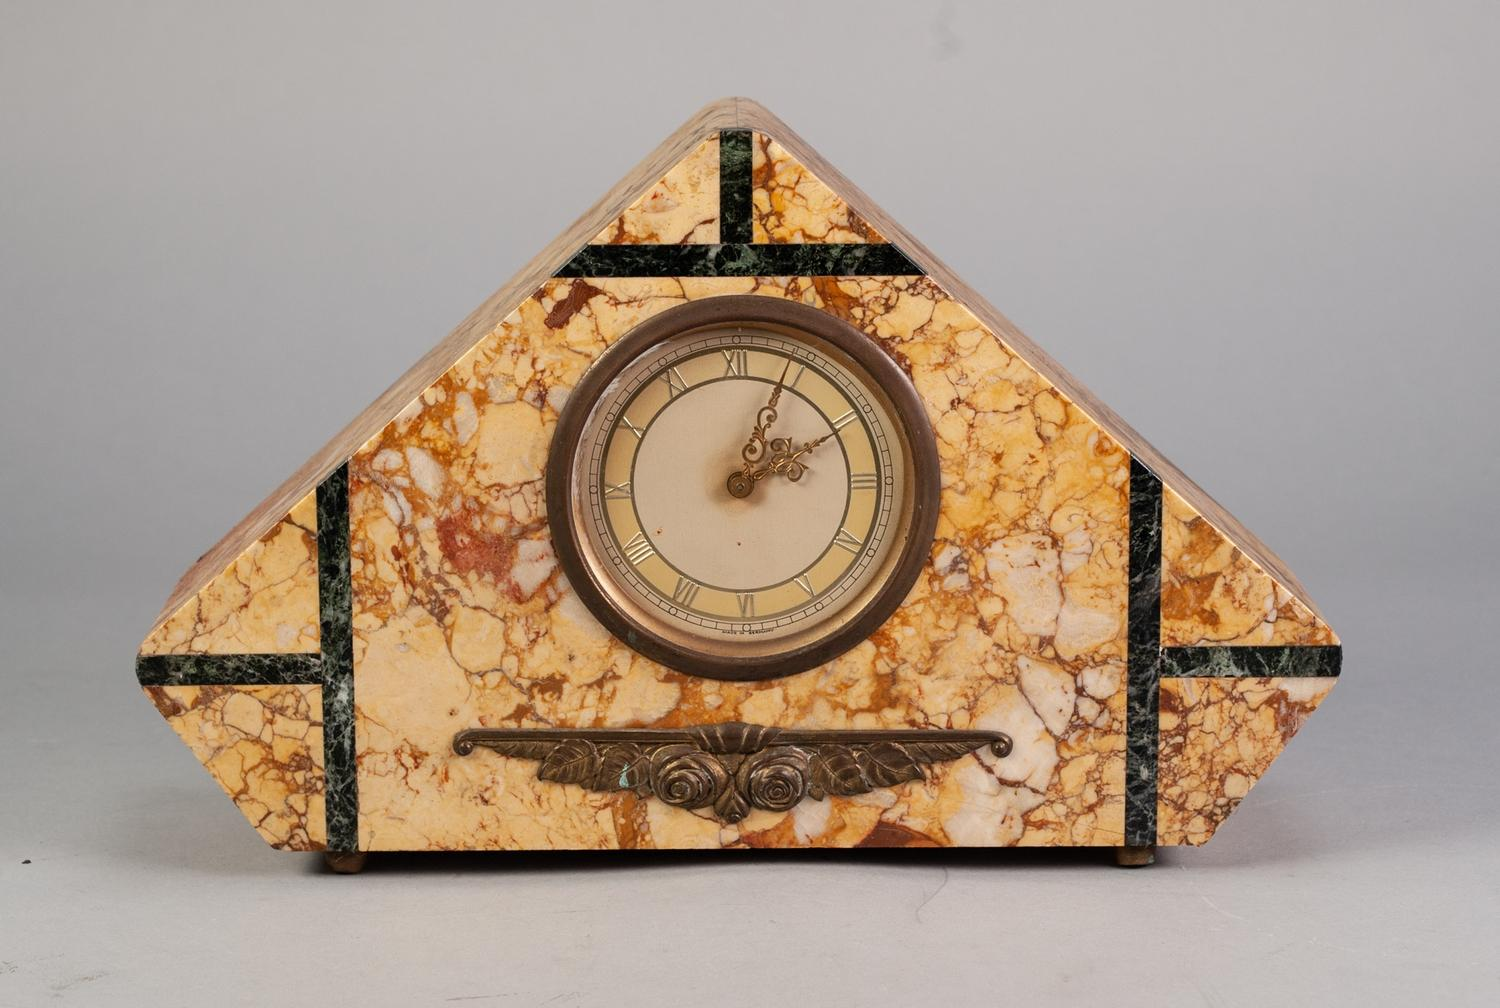 Lot 32 - ART DECO VEINED CREAM AND BLACK MARBLE TRIANGULAR SHAPED MANTEL CLOCK, with Roman chapter ring, 14